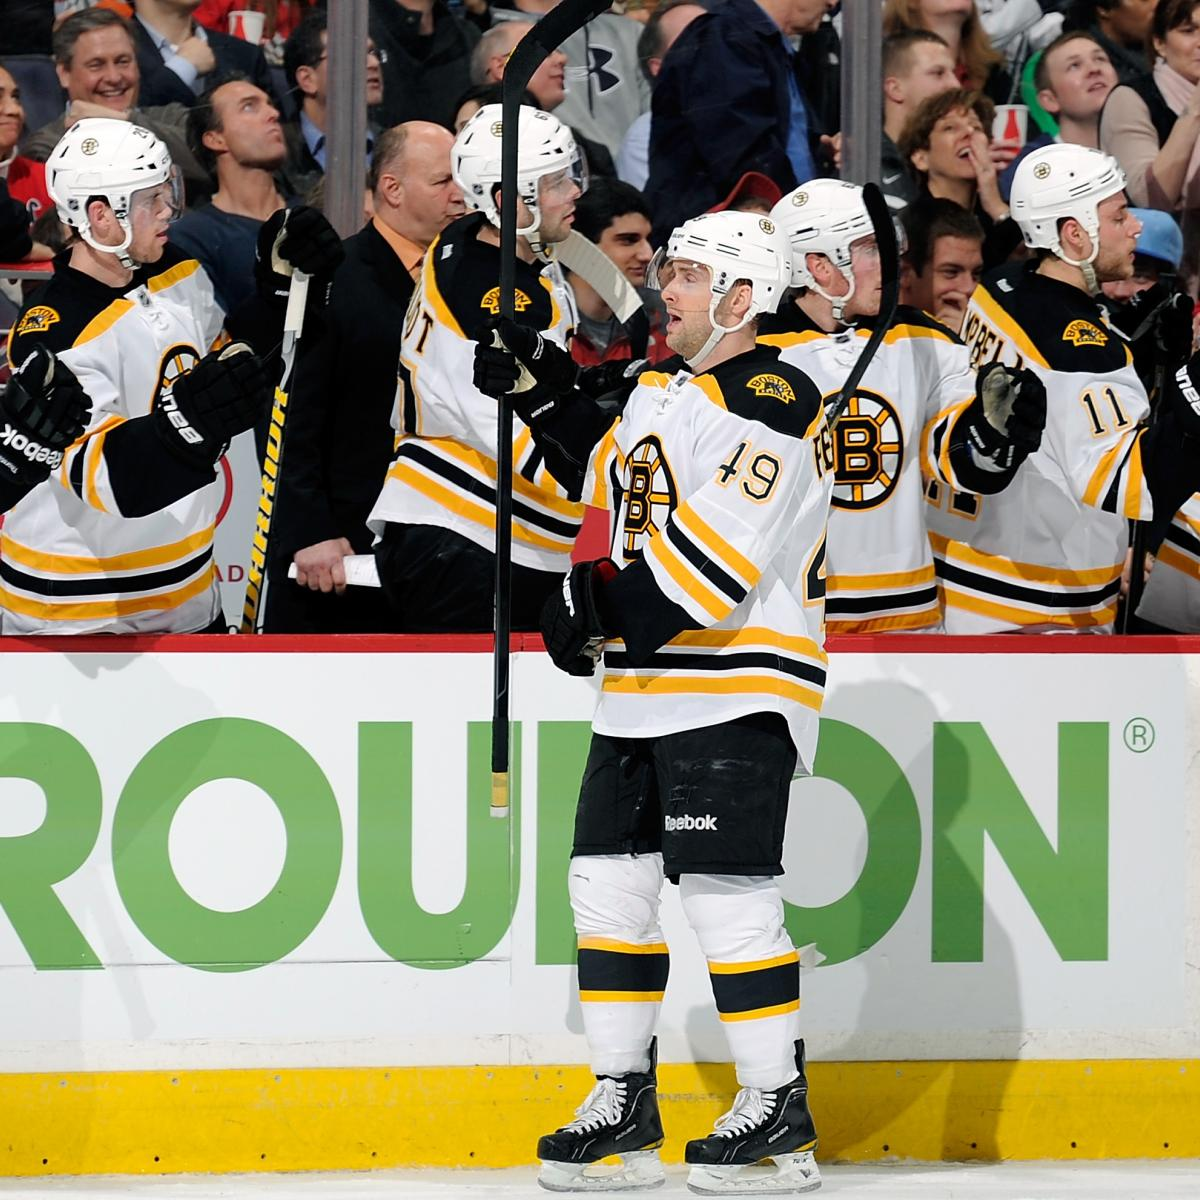 Boston Bruins: Why Rich Peverley Is The Right Replacement